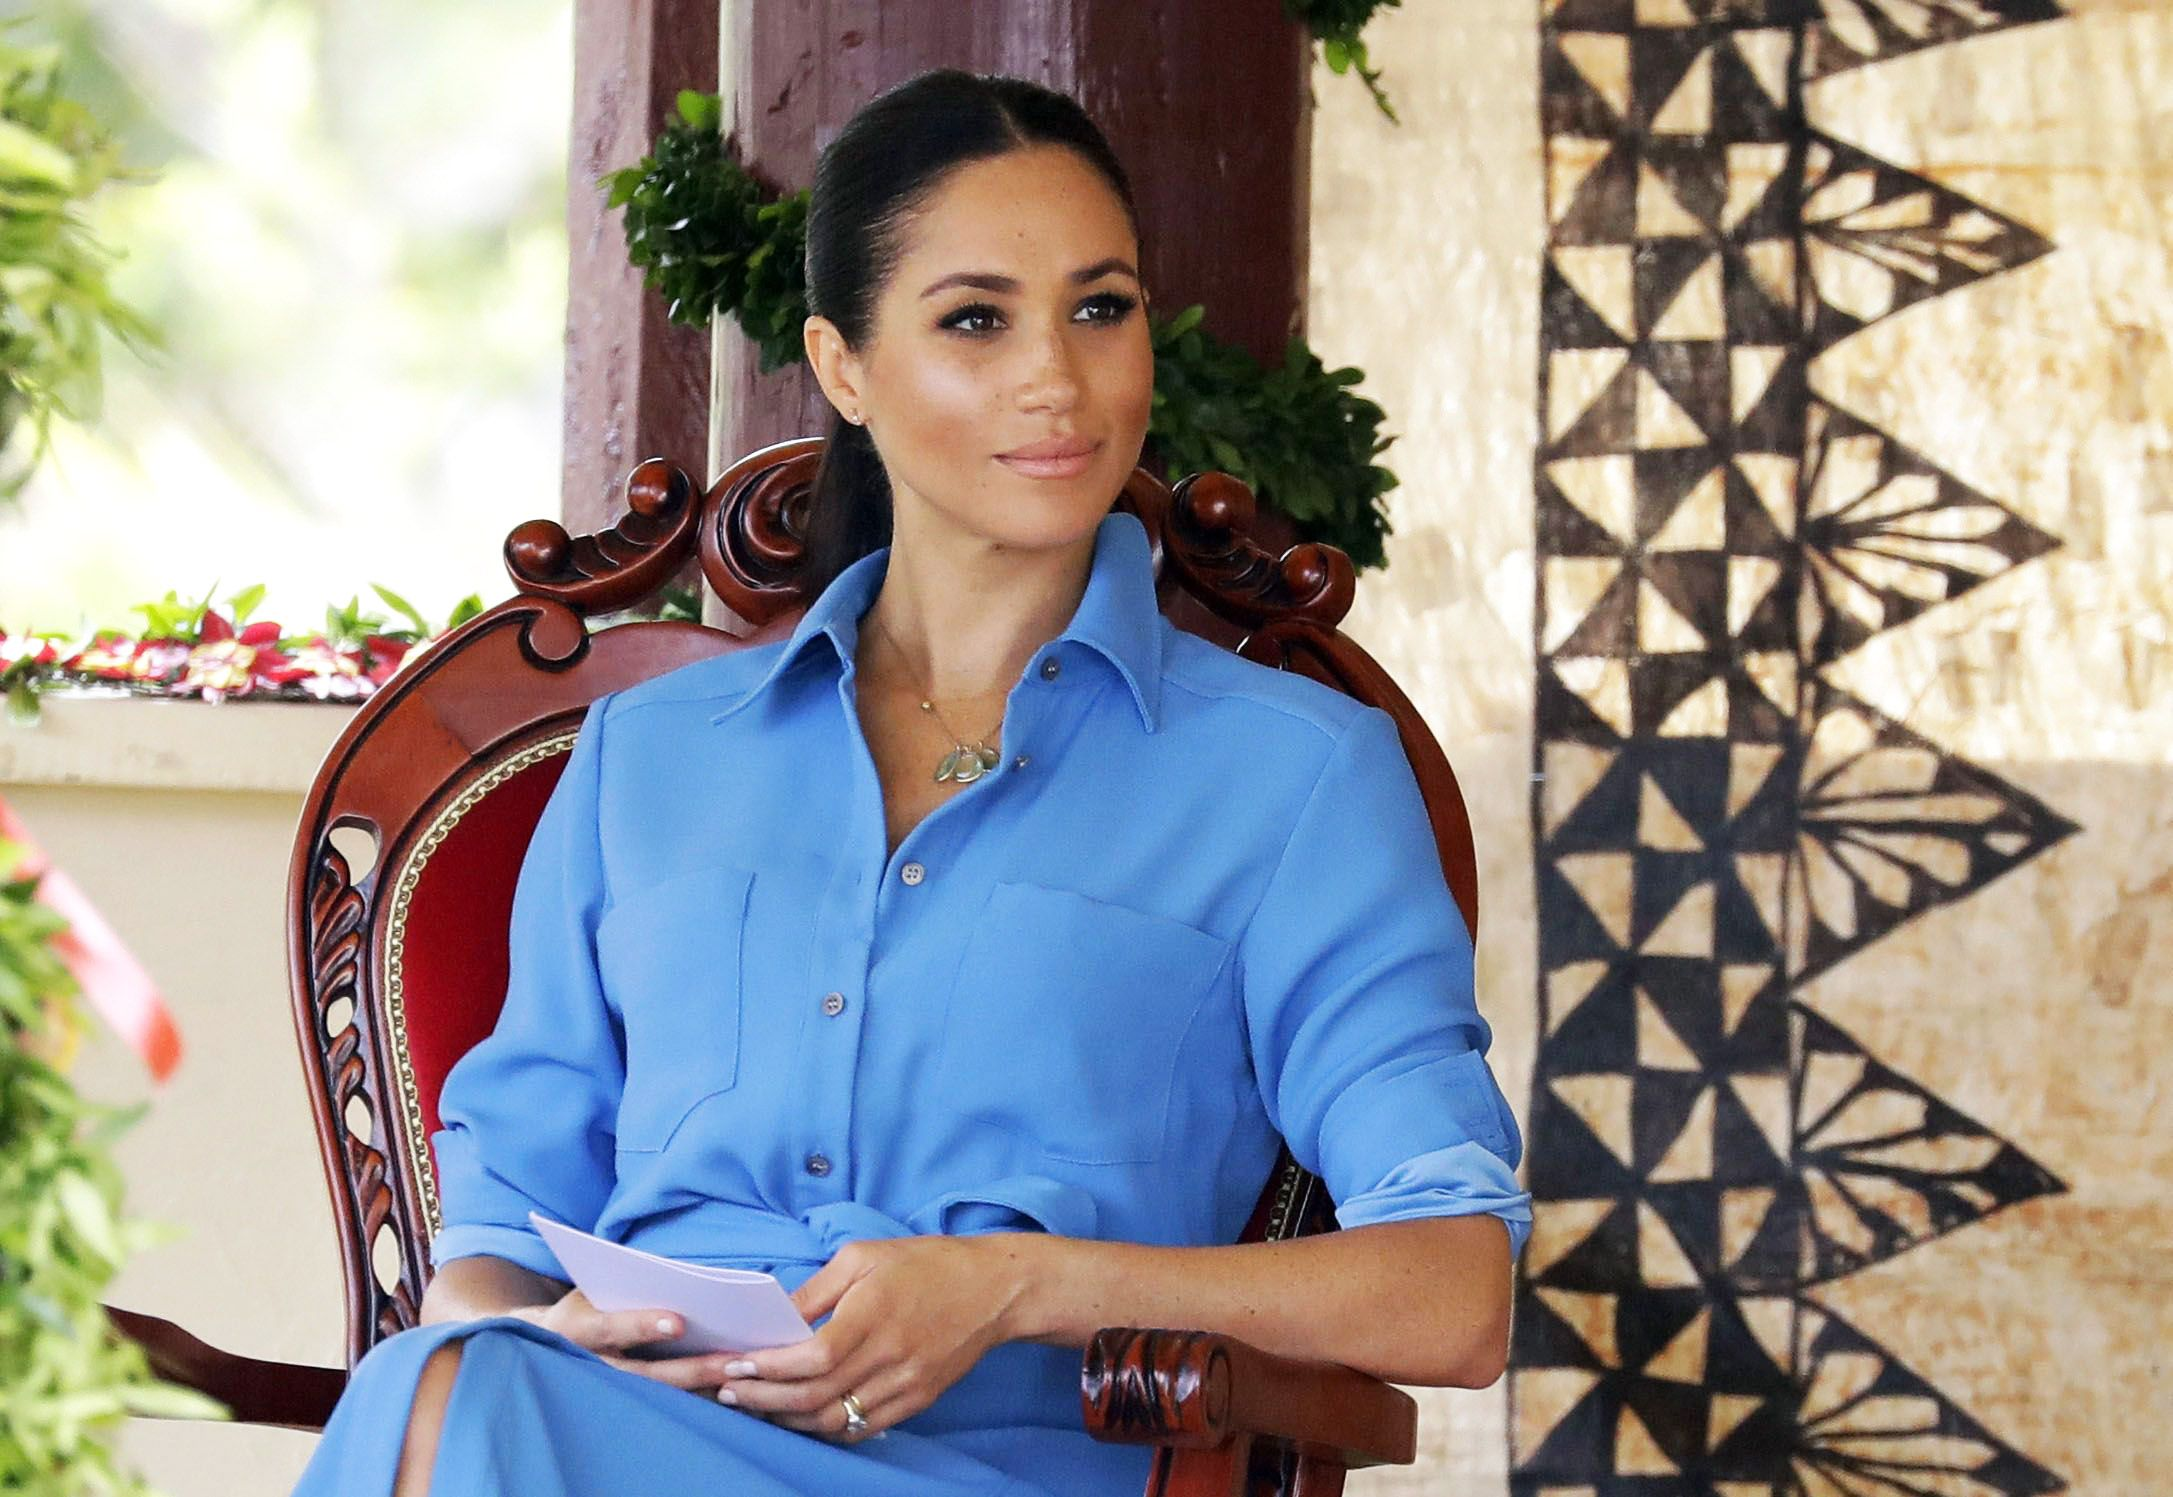 meghan markle s dad is reportedly trying to contact her in la meghan markle s dad is reportedly